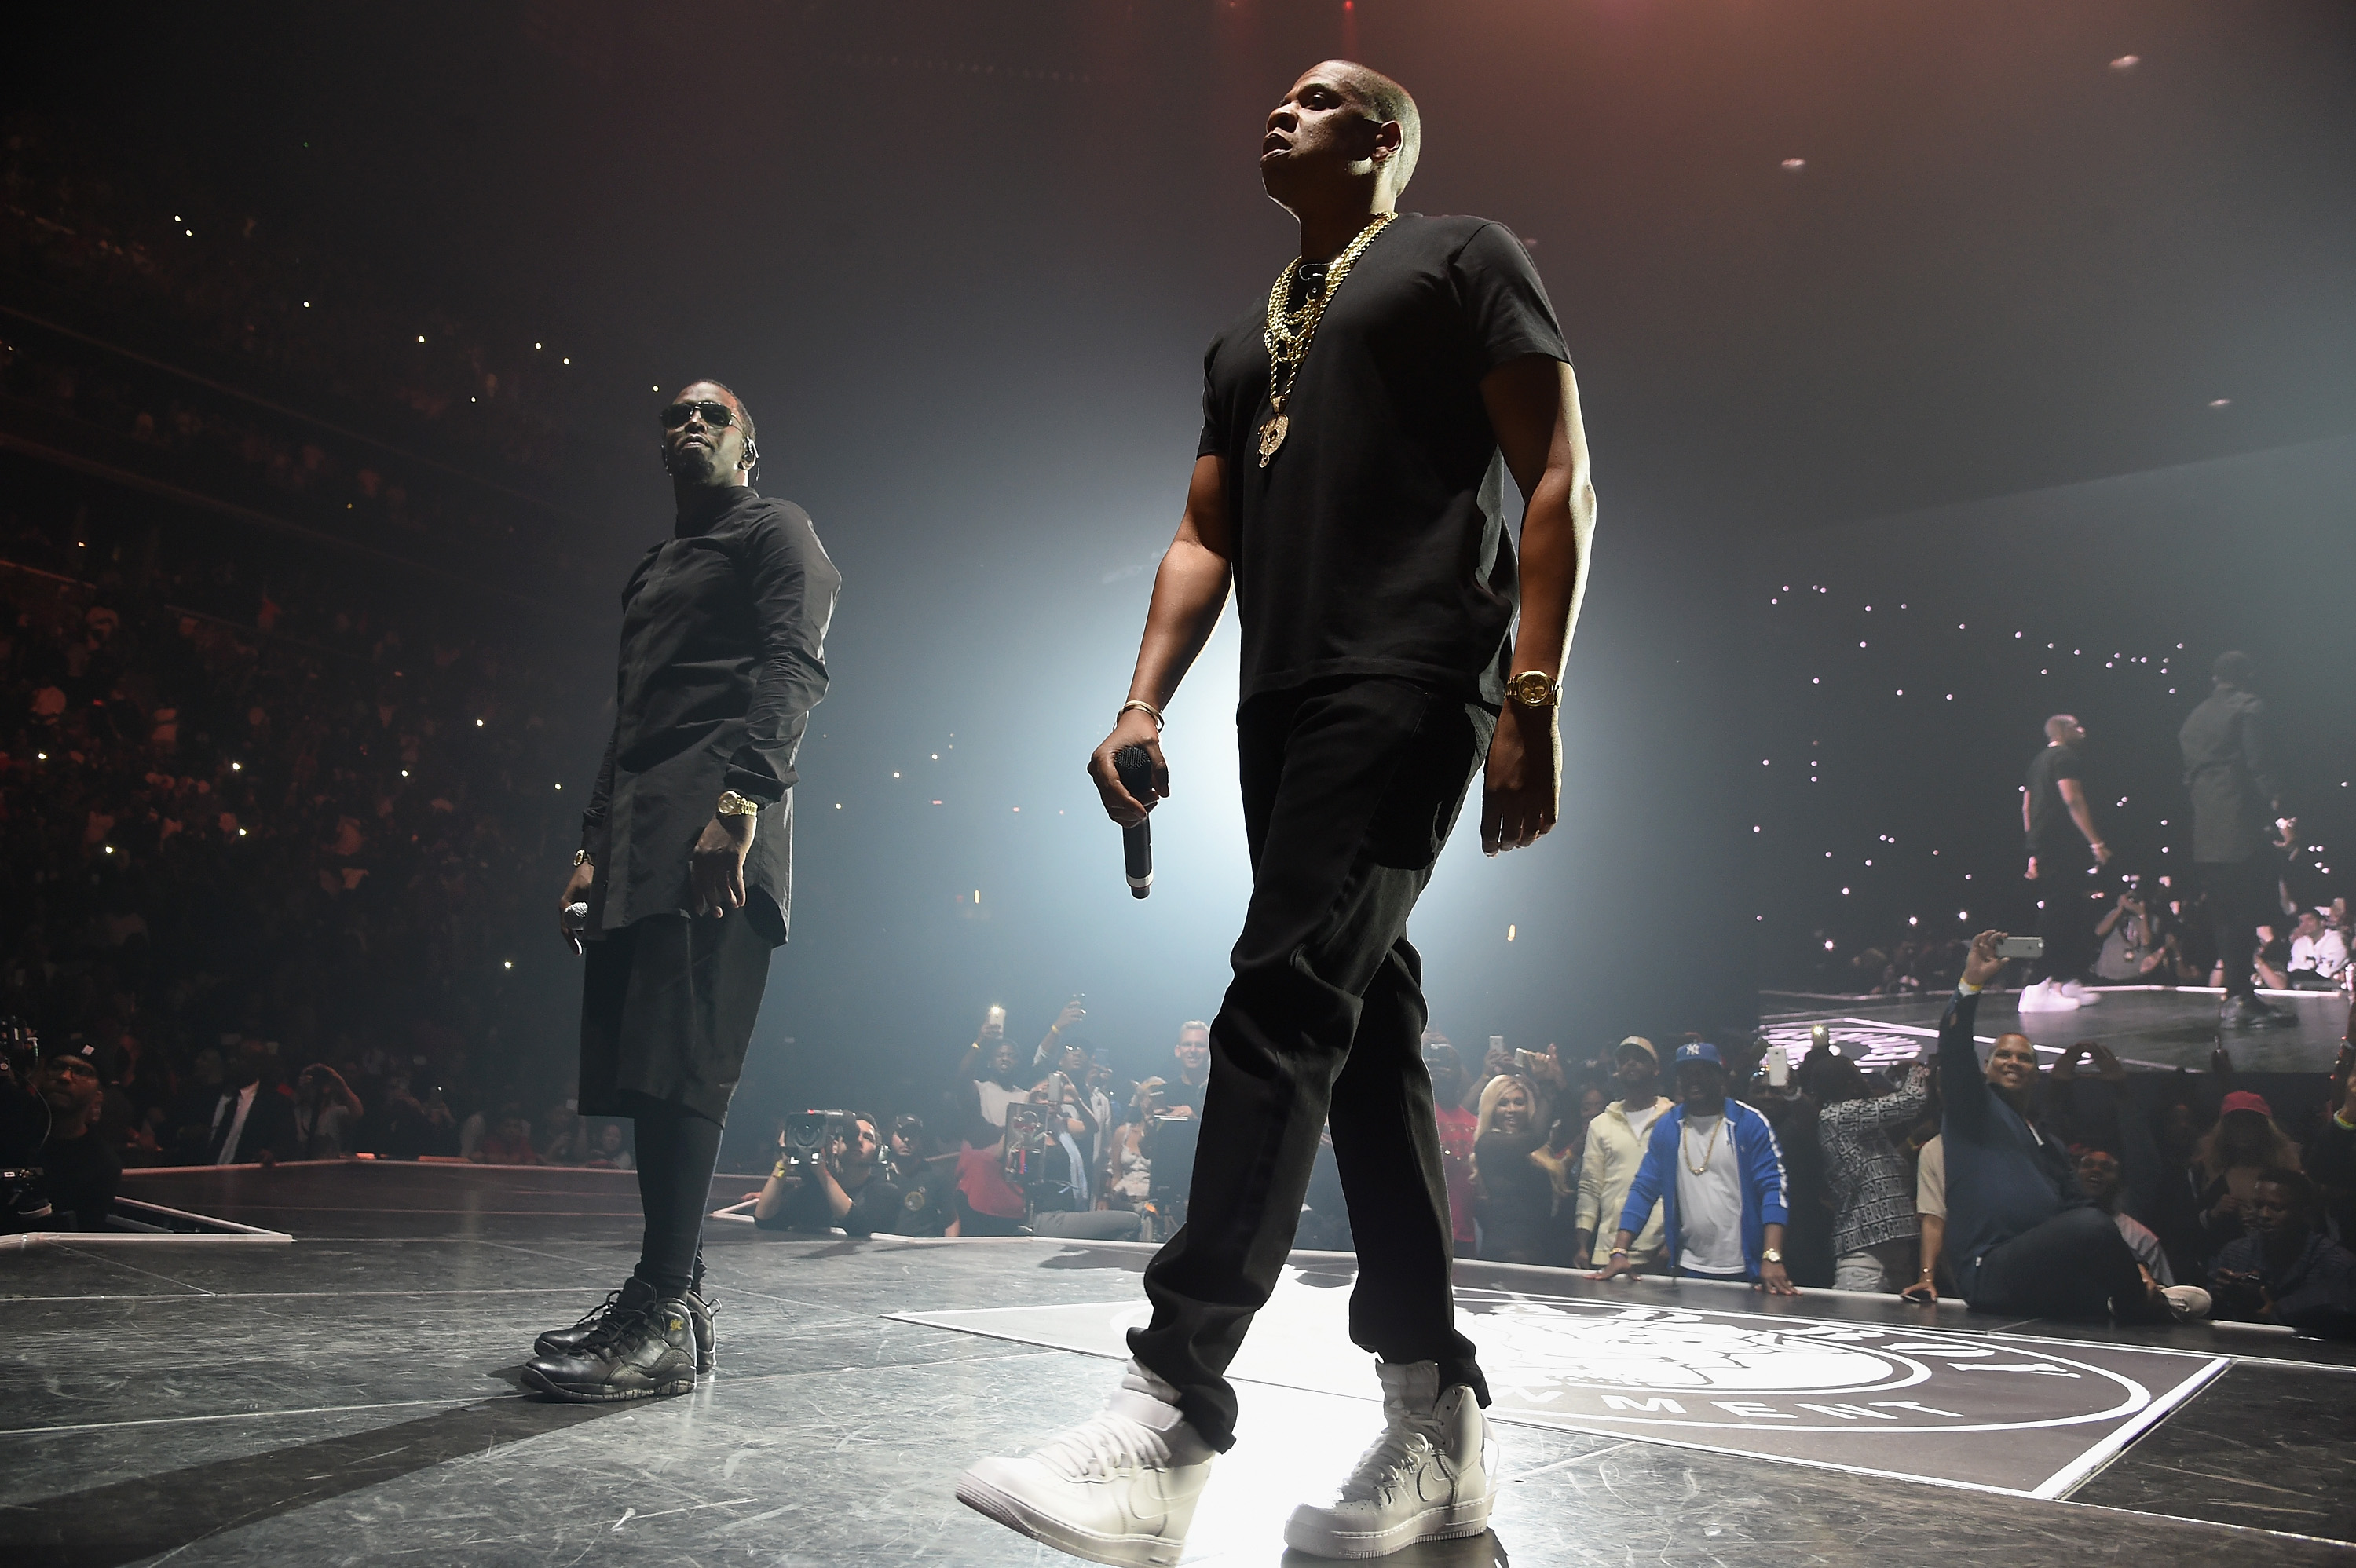 Puff Daddy And The Family Bad Boy Reunion Tour Presented By Ciroc Vodka And Live Nation - May 20